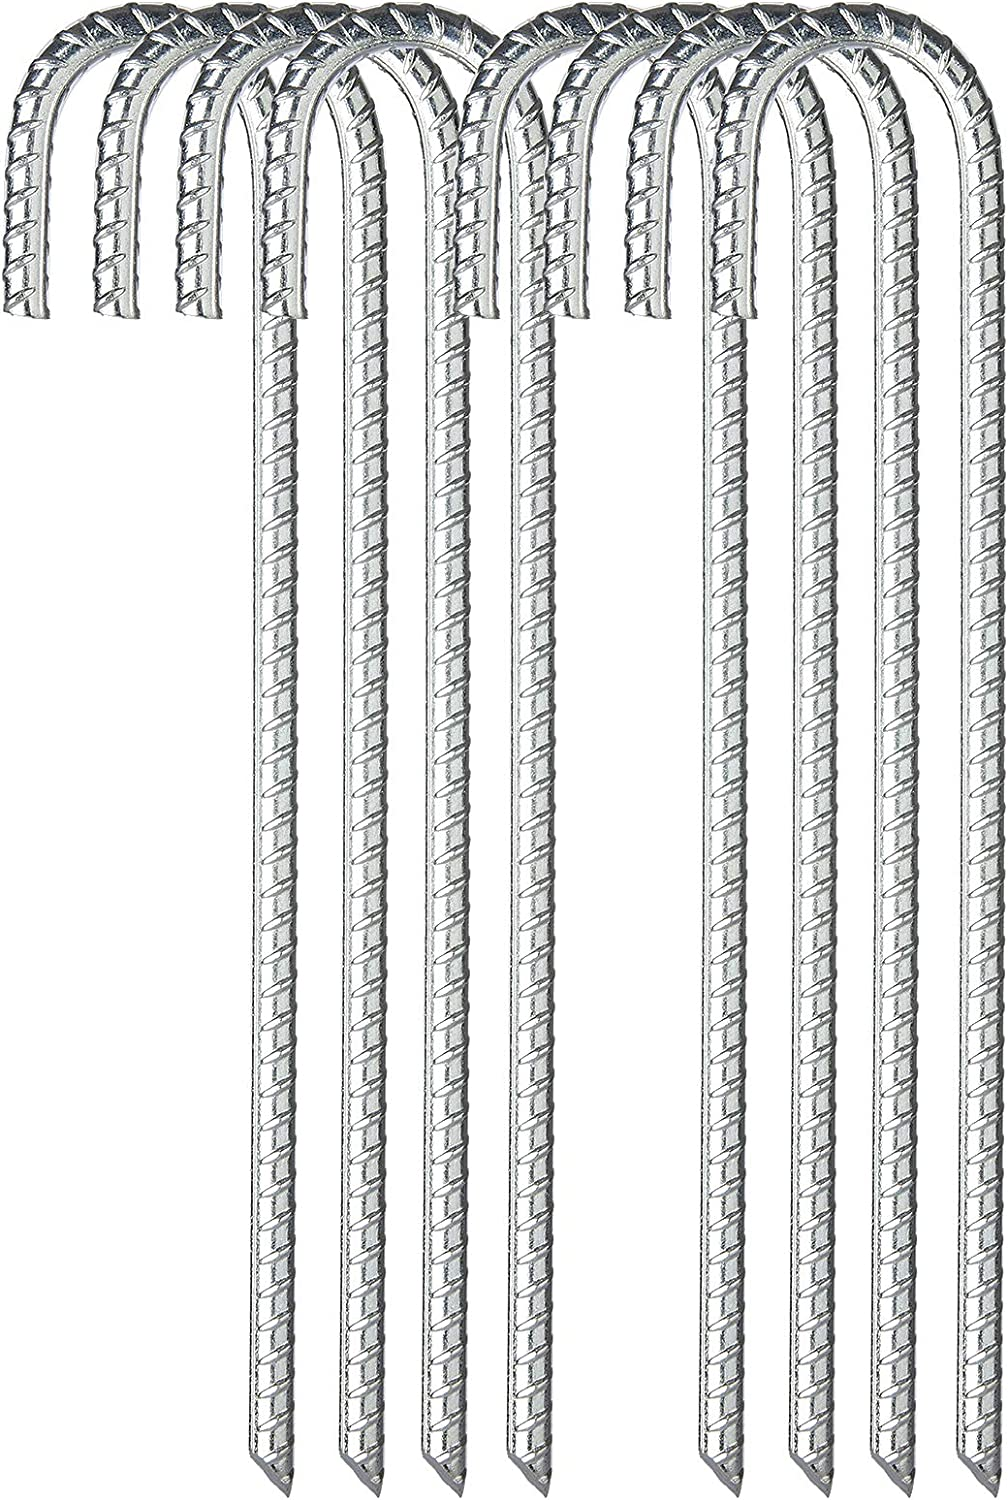 FEED GARDEN 12 Inch Galvanized Rebar Stakes Heavy Duty J Hook,Ground Stakes Tent Stakes Steel Ground Anchors,8 Pack,Silver